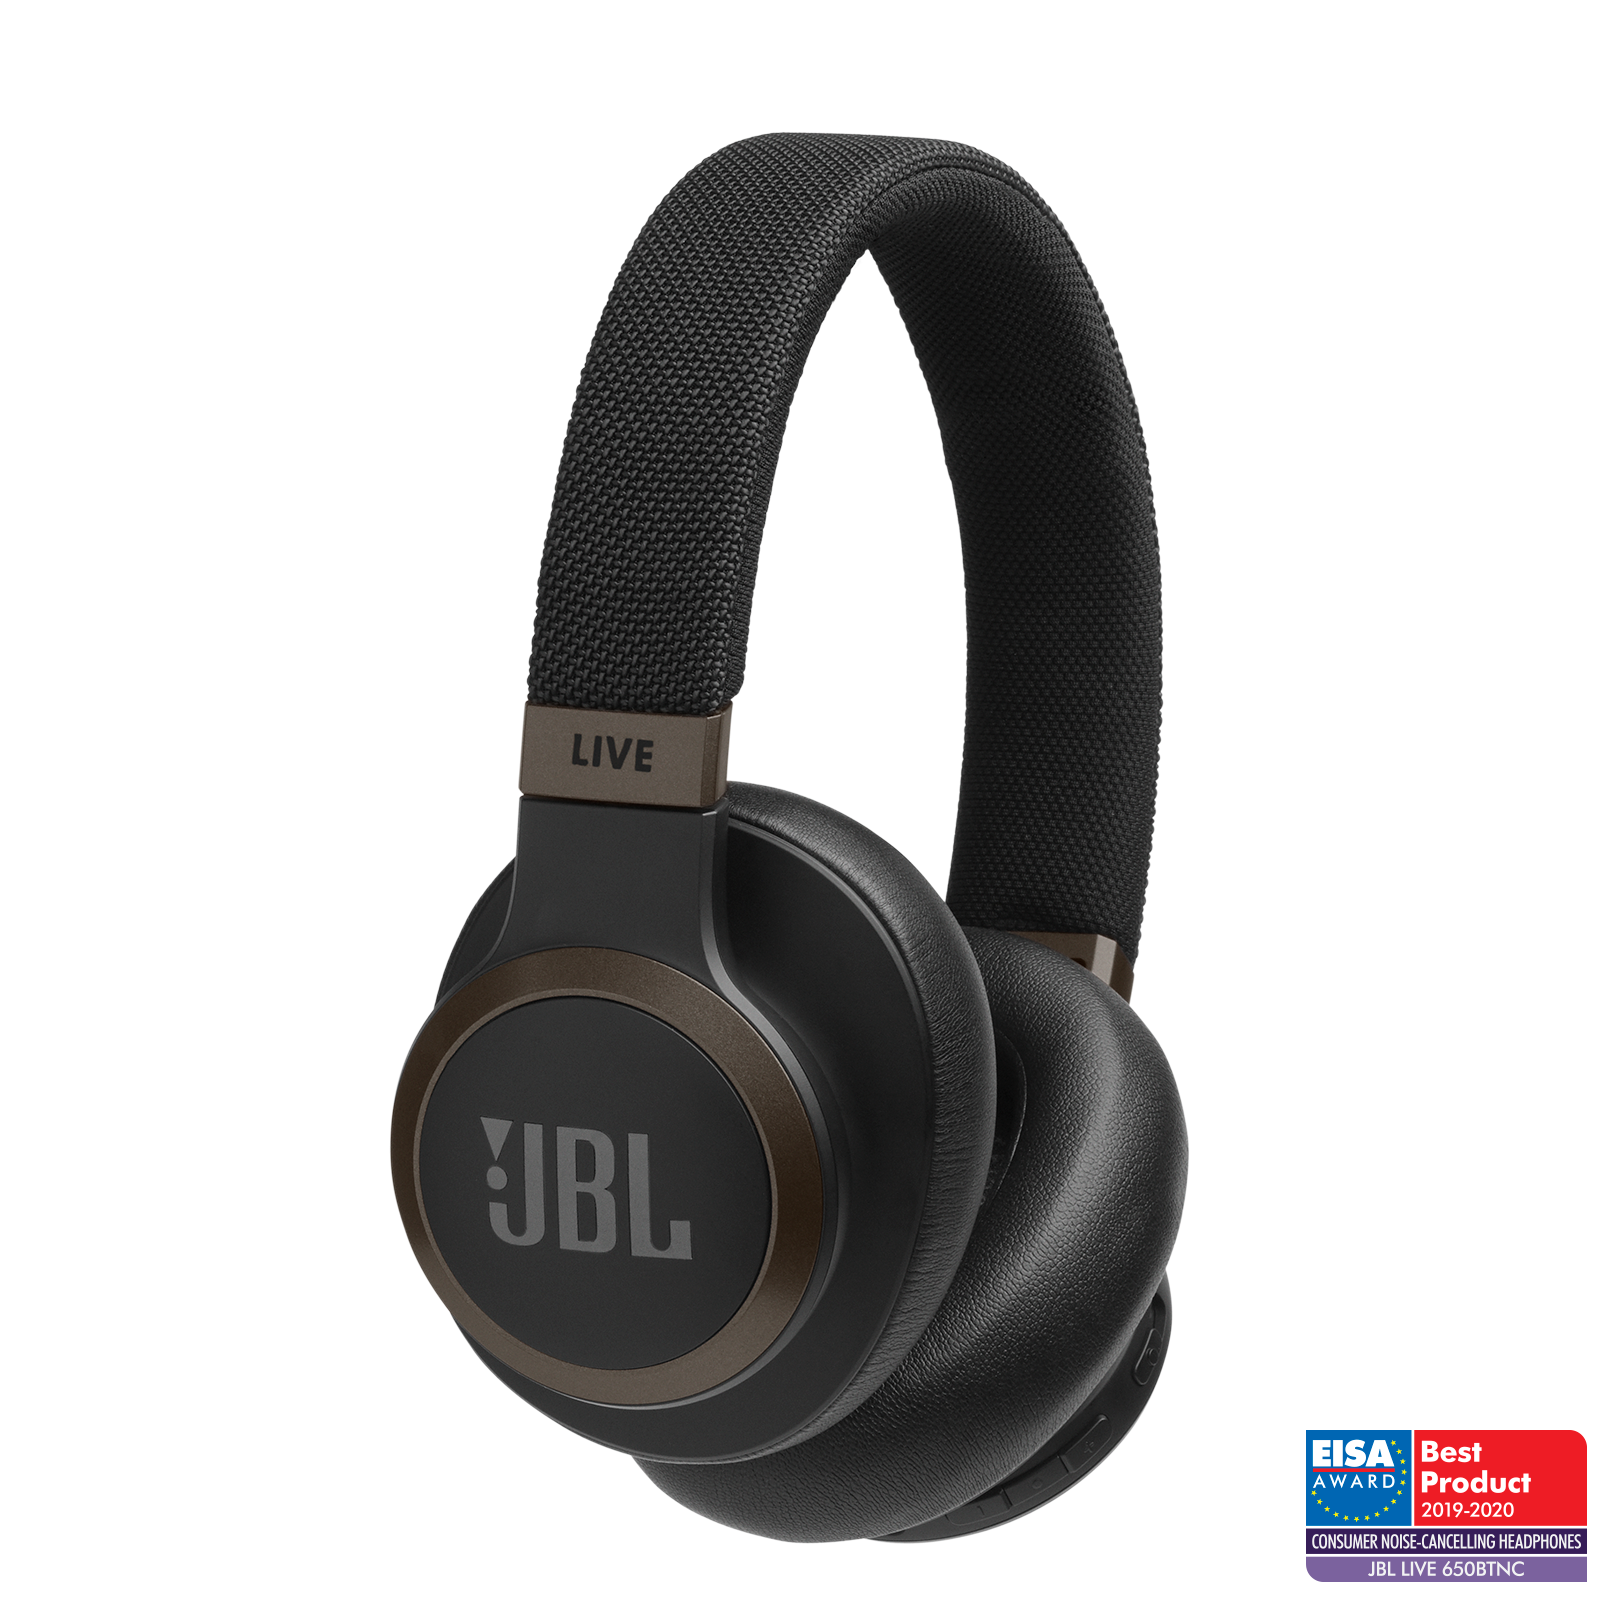 JBL LIVE 650BTNC BT Wireless headphone